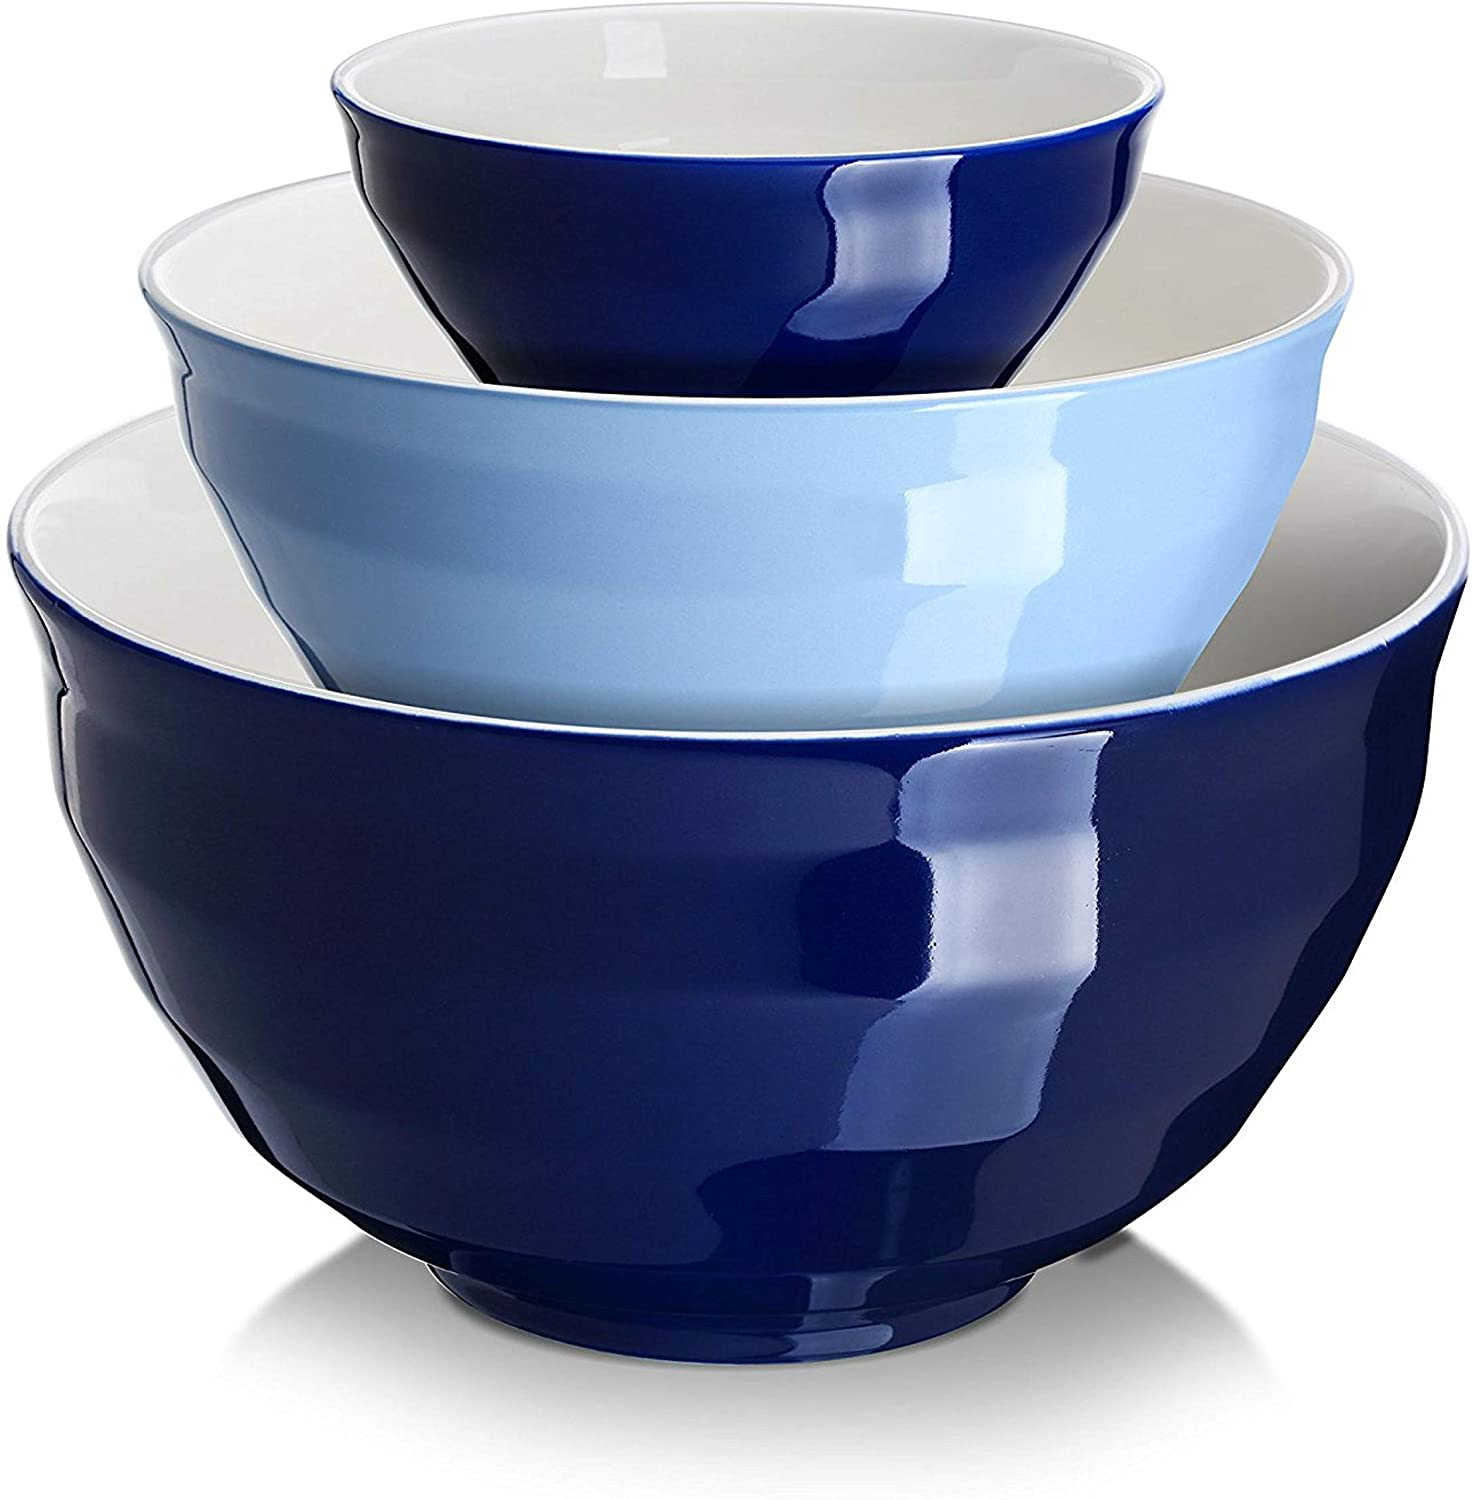 cooking-gifts-bowls